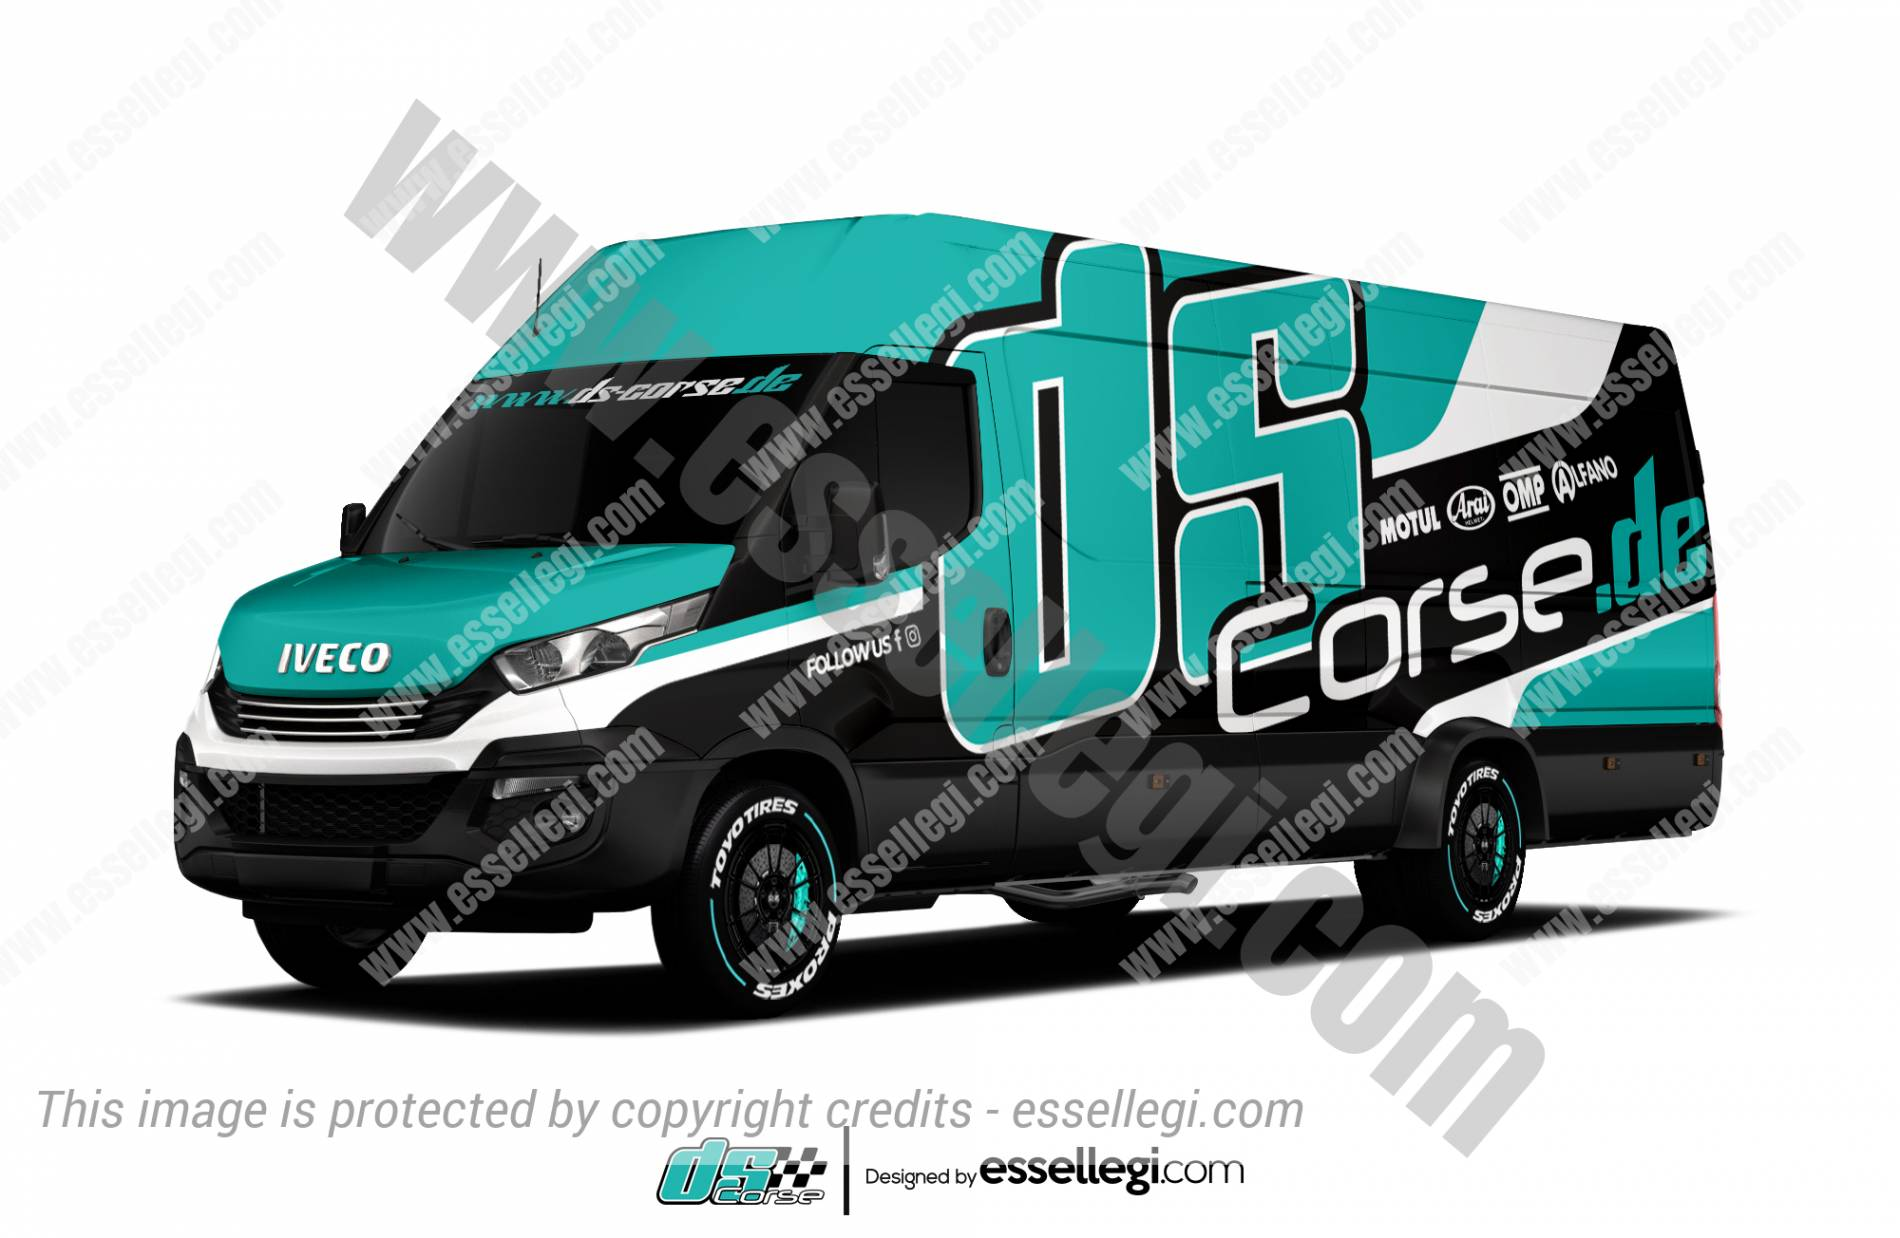 Iveco Daily Wrap Design. Iveco Daily | Van Wrap Design by Essellegi. Van Signs, Van Signage, Van Wrapping, Van Signwriting, Van Wrap Designer, Signs for Van, Van Logo, Van Graphic by Essellegi.